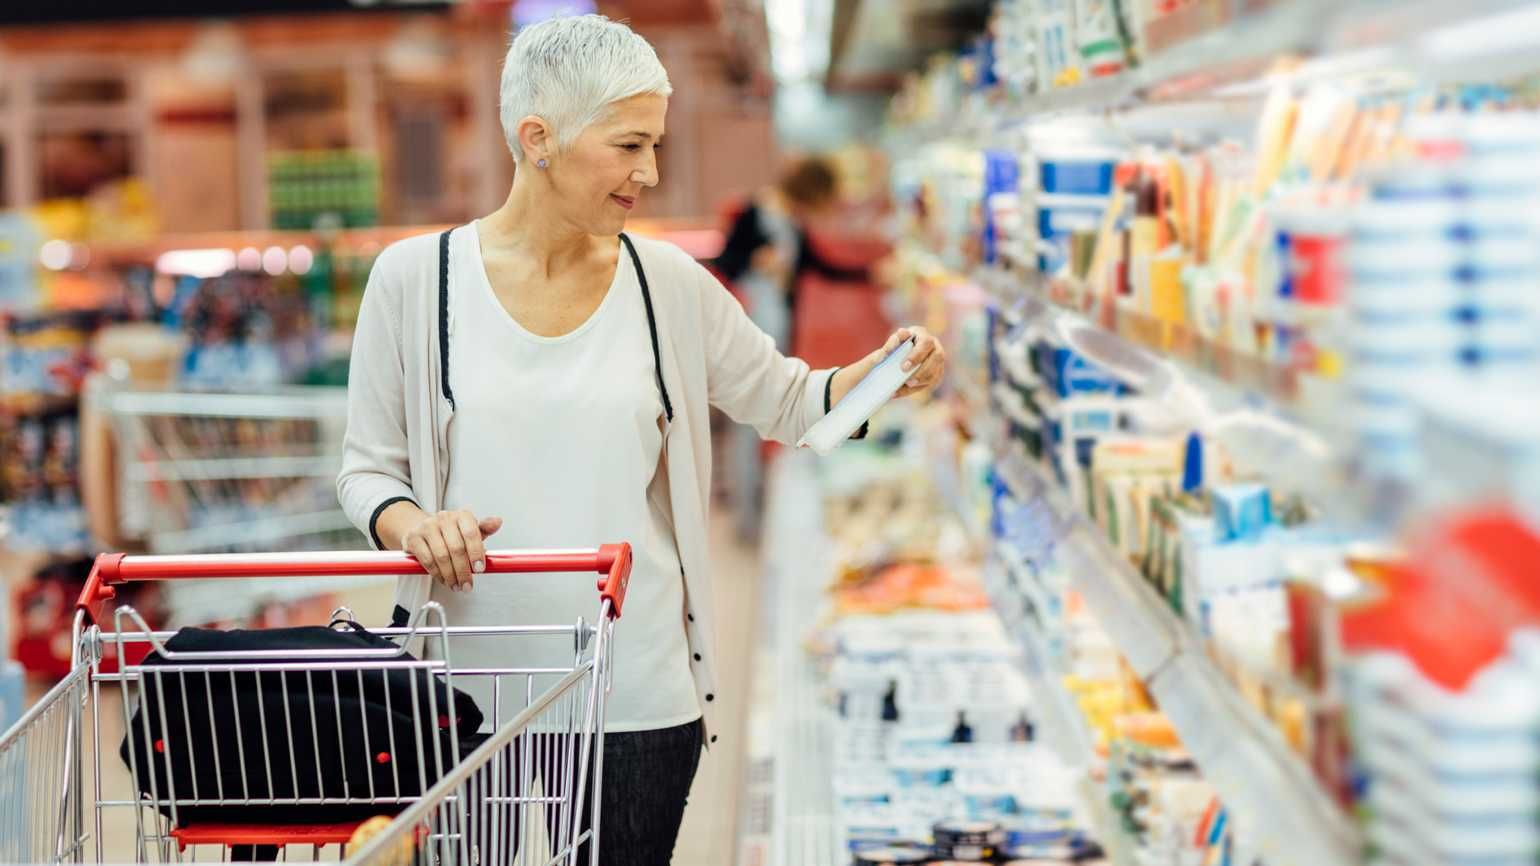 An older woman grocery shopping on a budget.